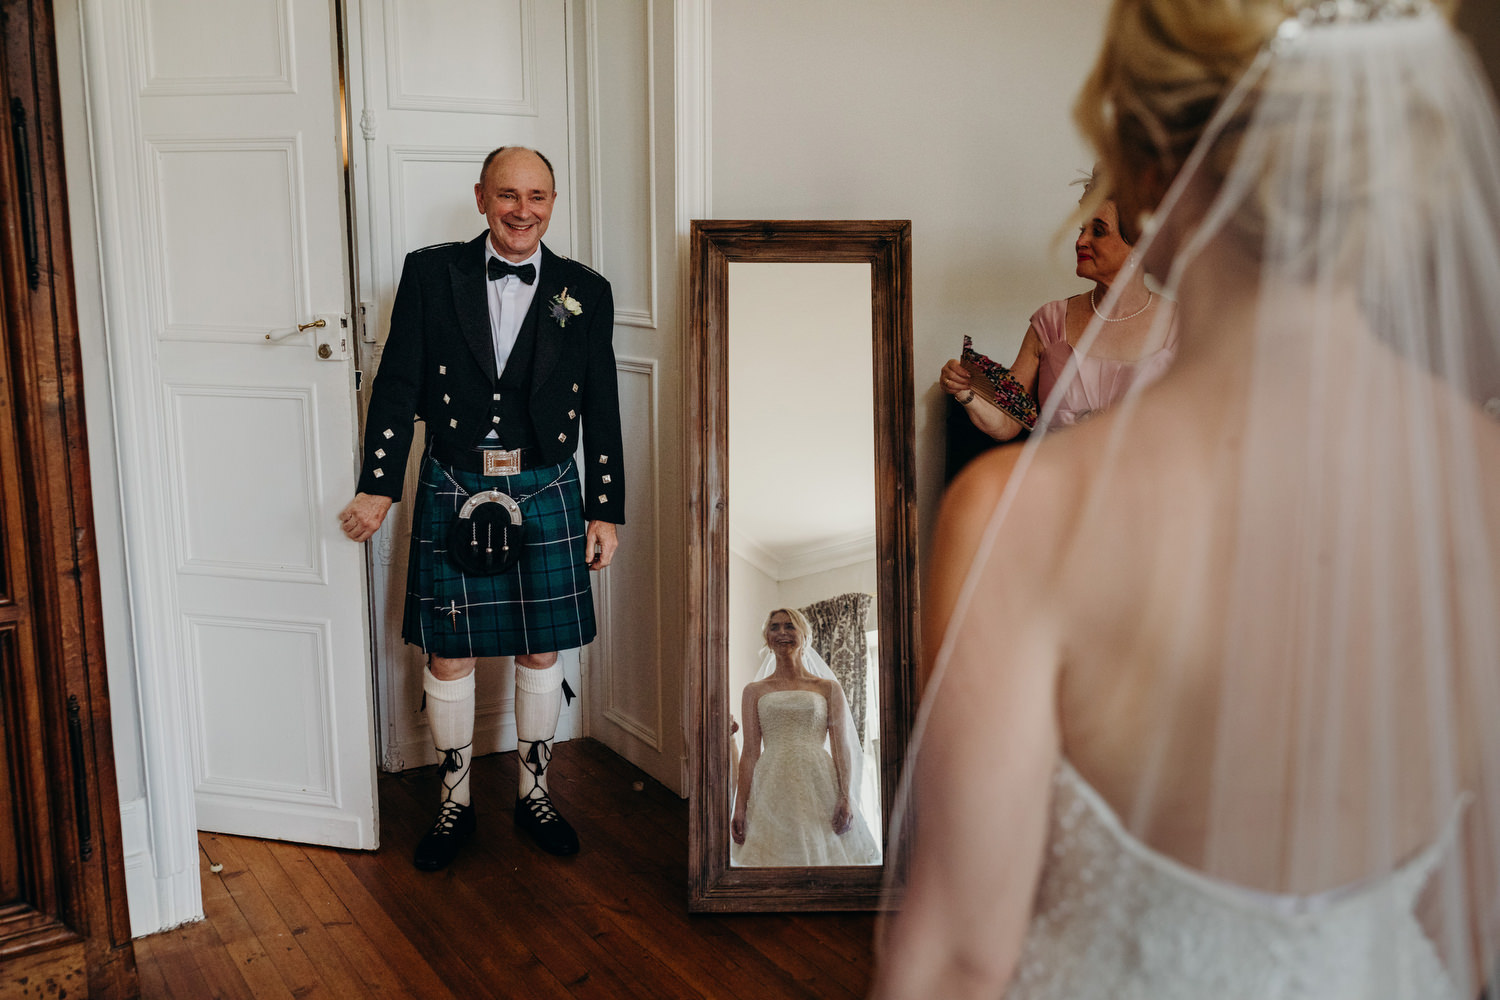 father of bride sees her in dress for first time